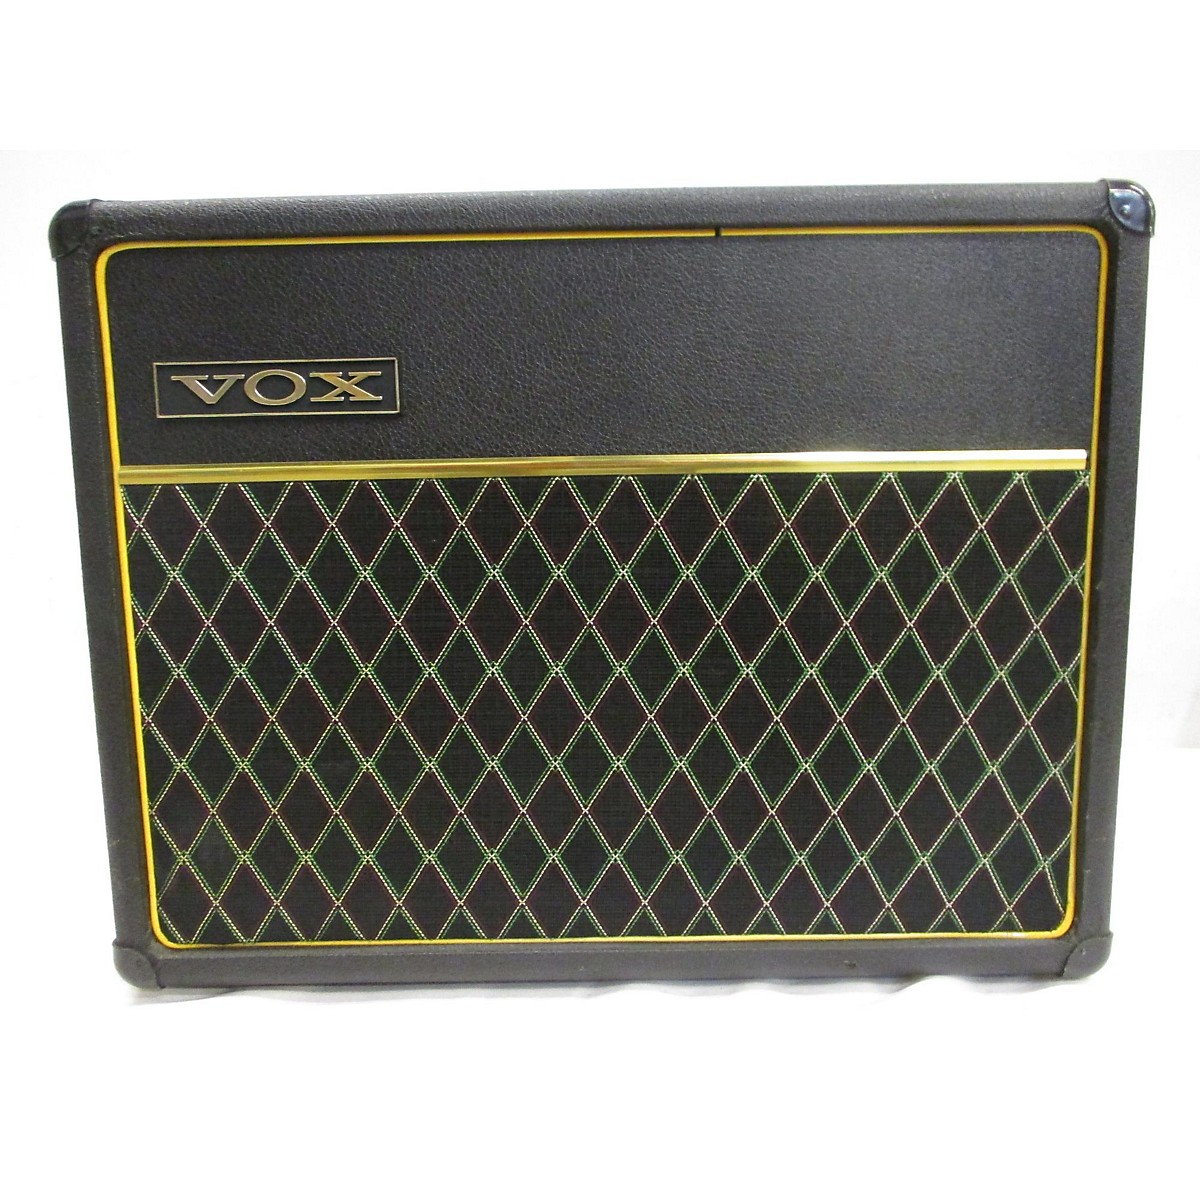 Vox 1960s 1960s Vox Cambridge Reverb V1032 Solid State Guitar Combo Amp